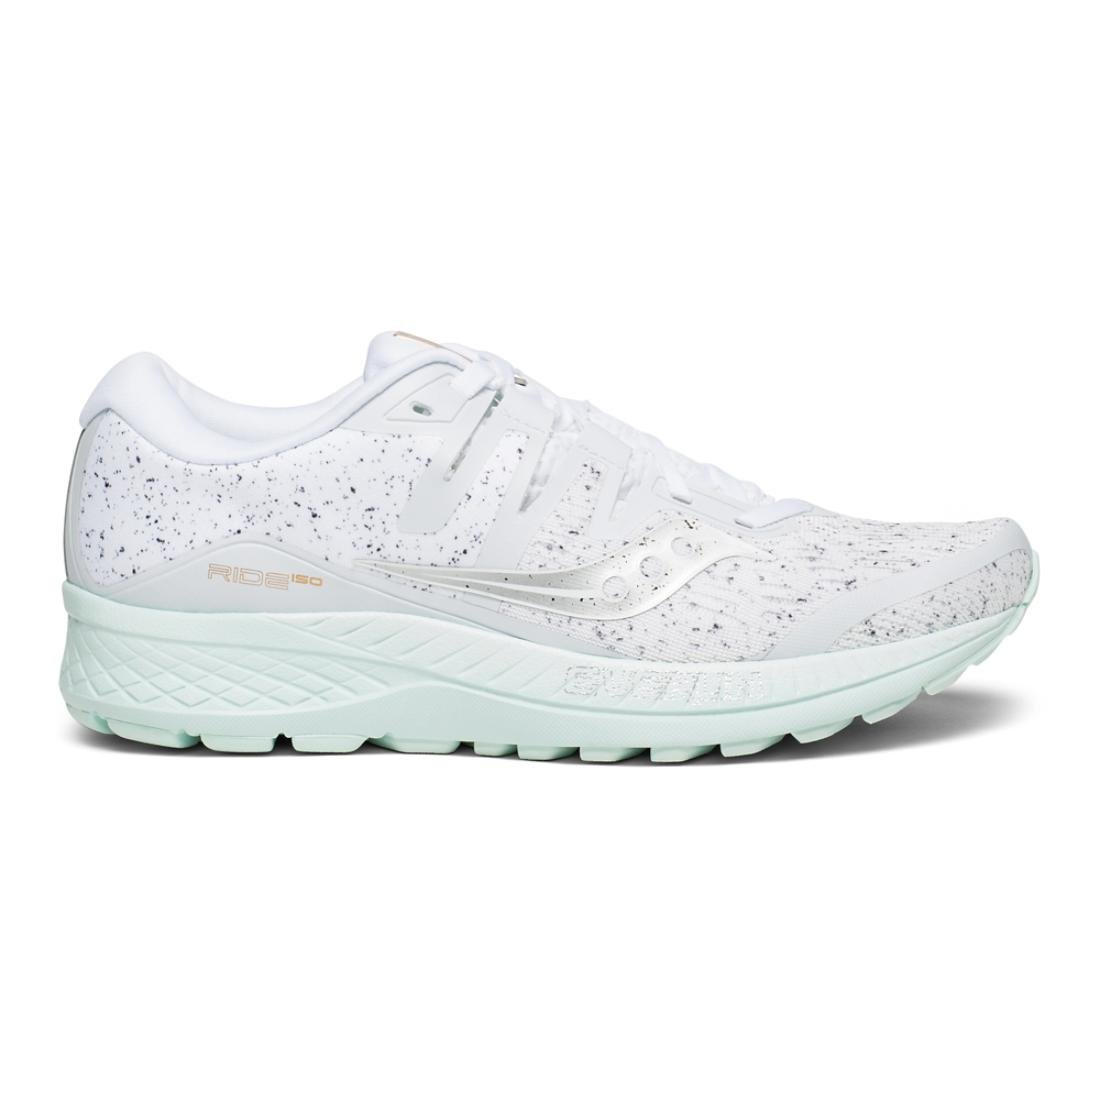 Saucony Women's Ride ISO Running Shoe B078PQHLGC 10 B(M) US|White